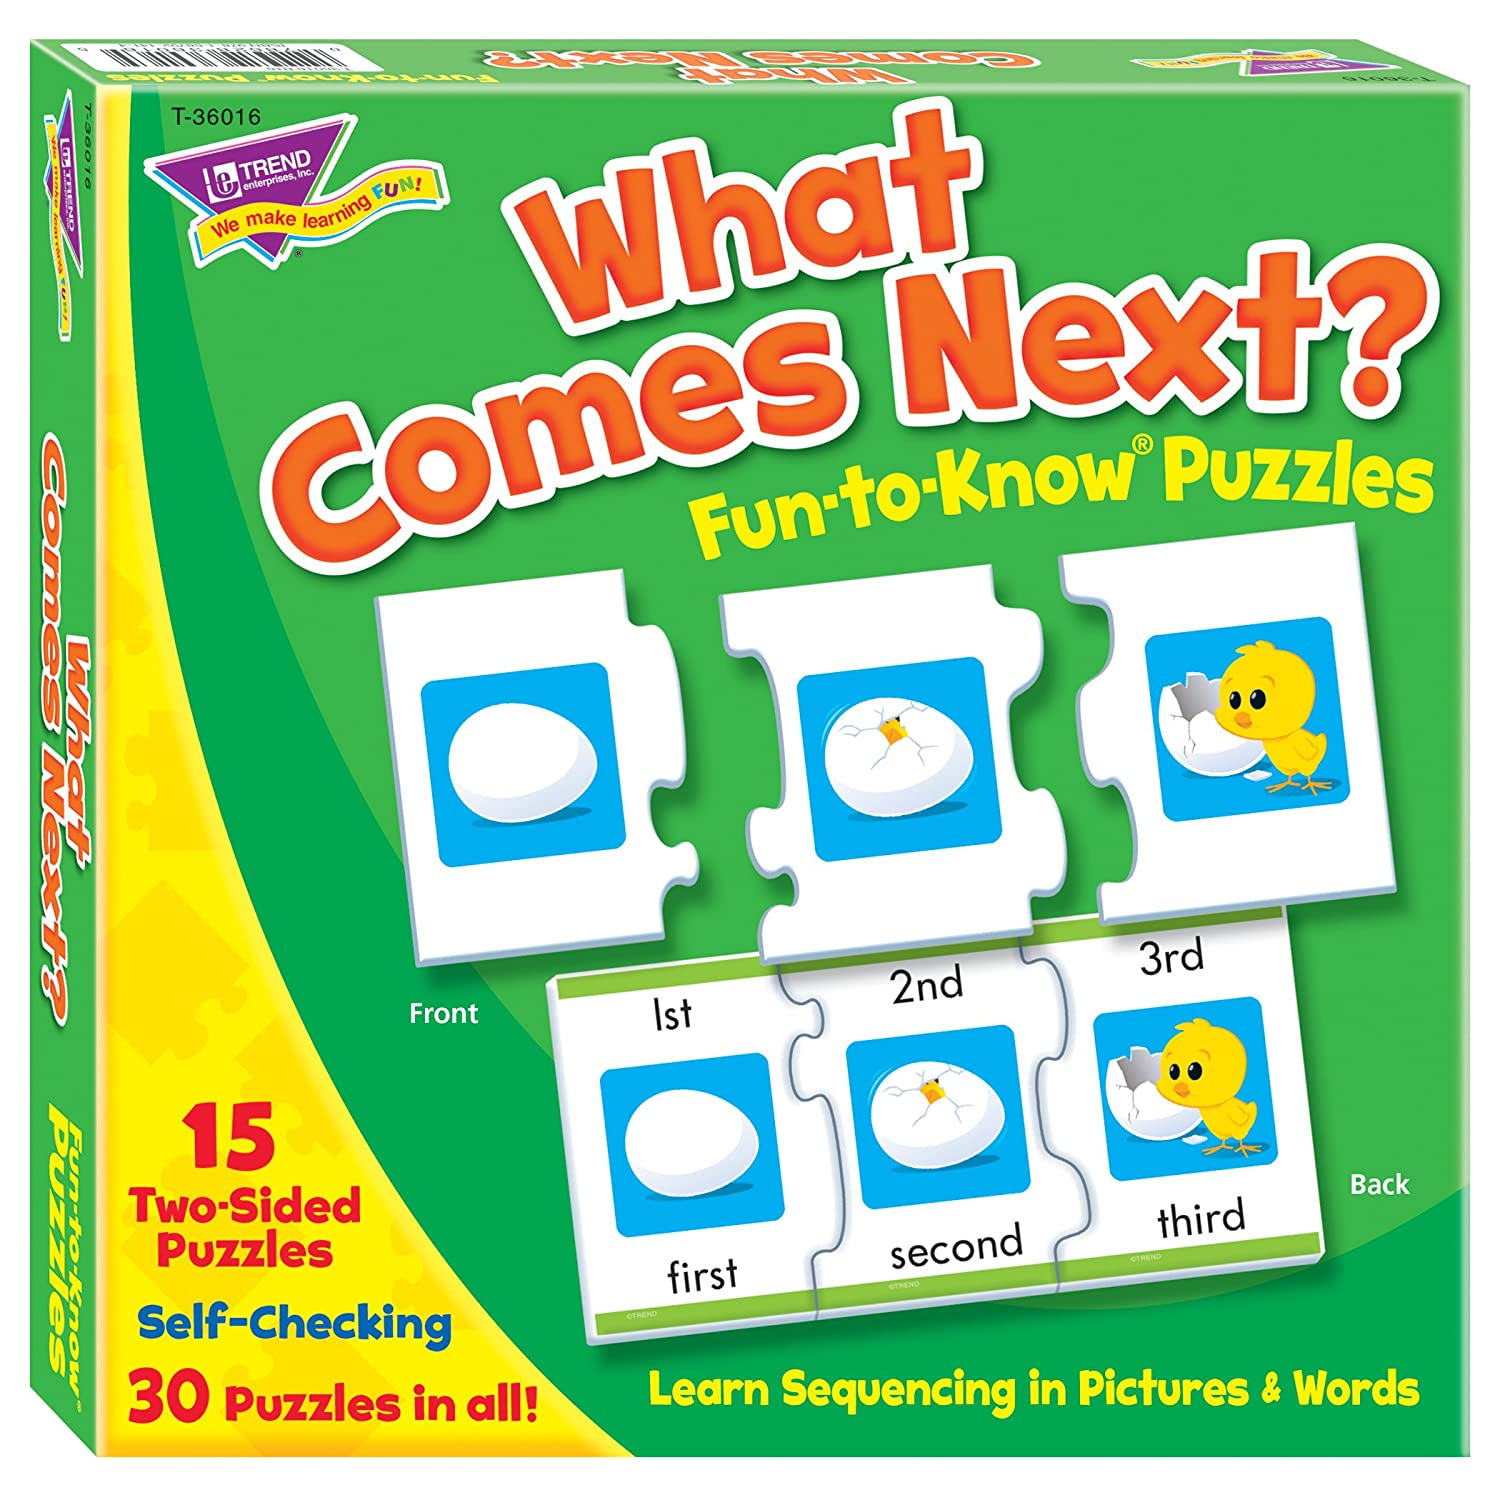 Fun to Know® Puzzles What Comes Next